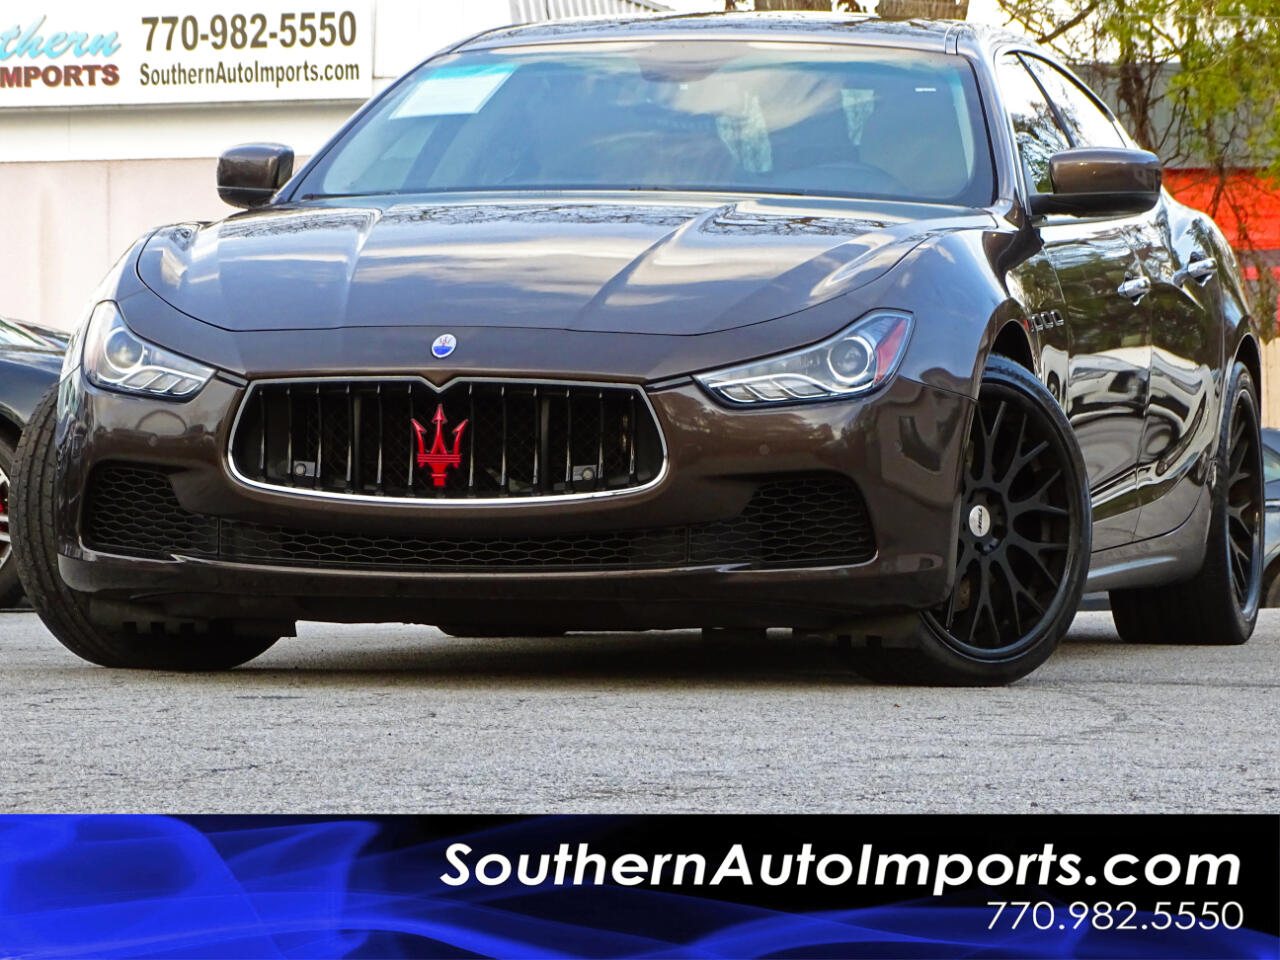 2014 Maserati Ghibli S Q4 w/Back up Camera Navigation System